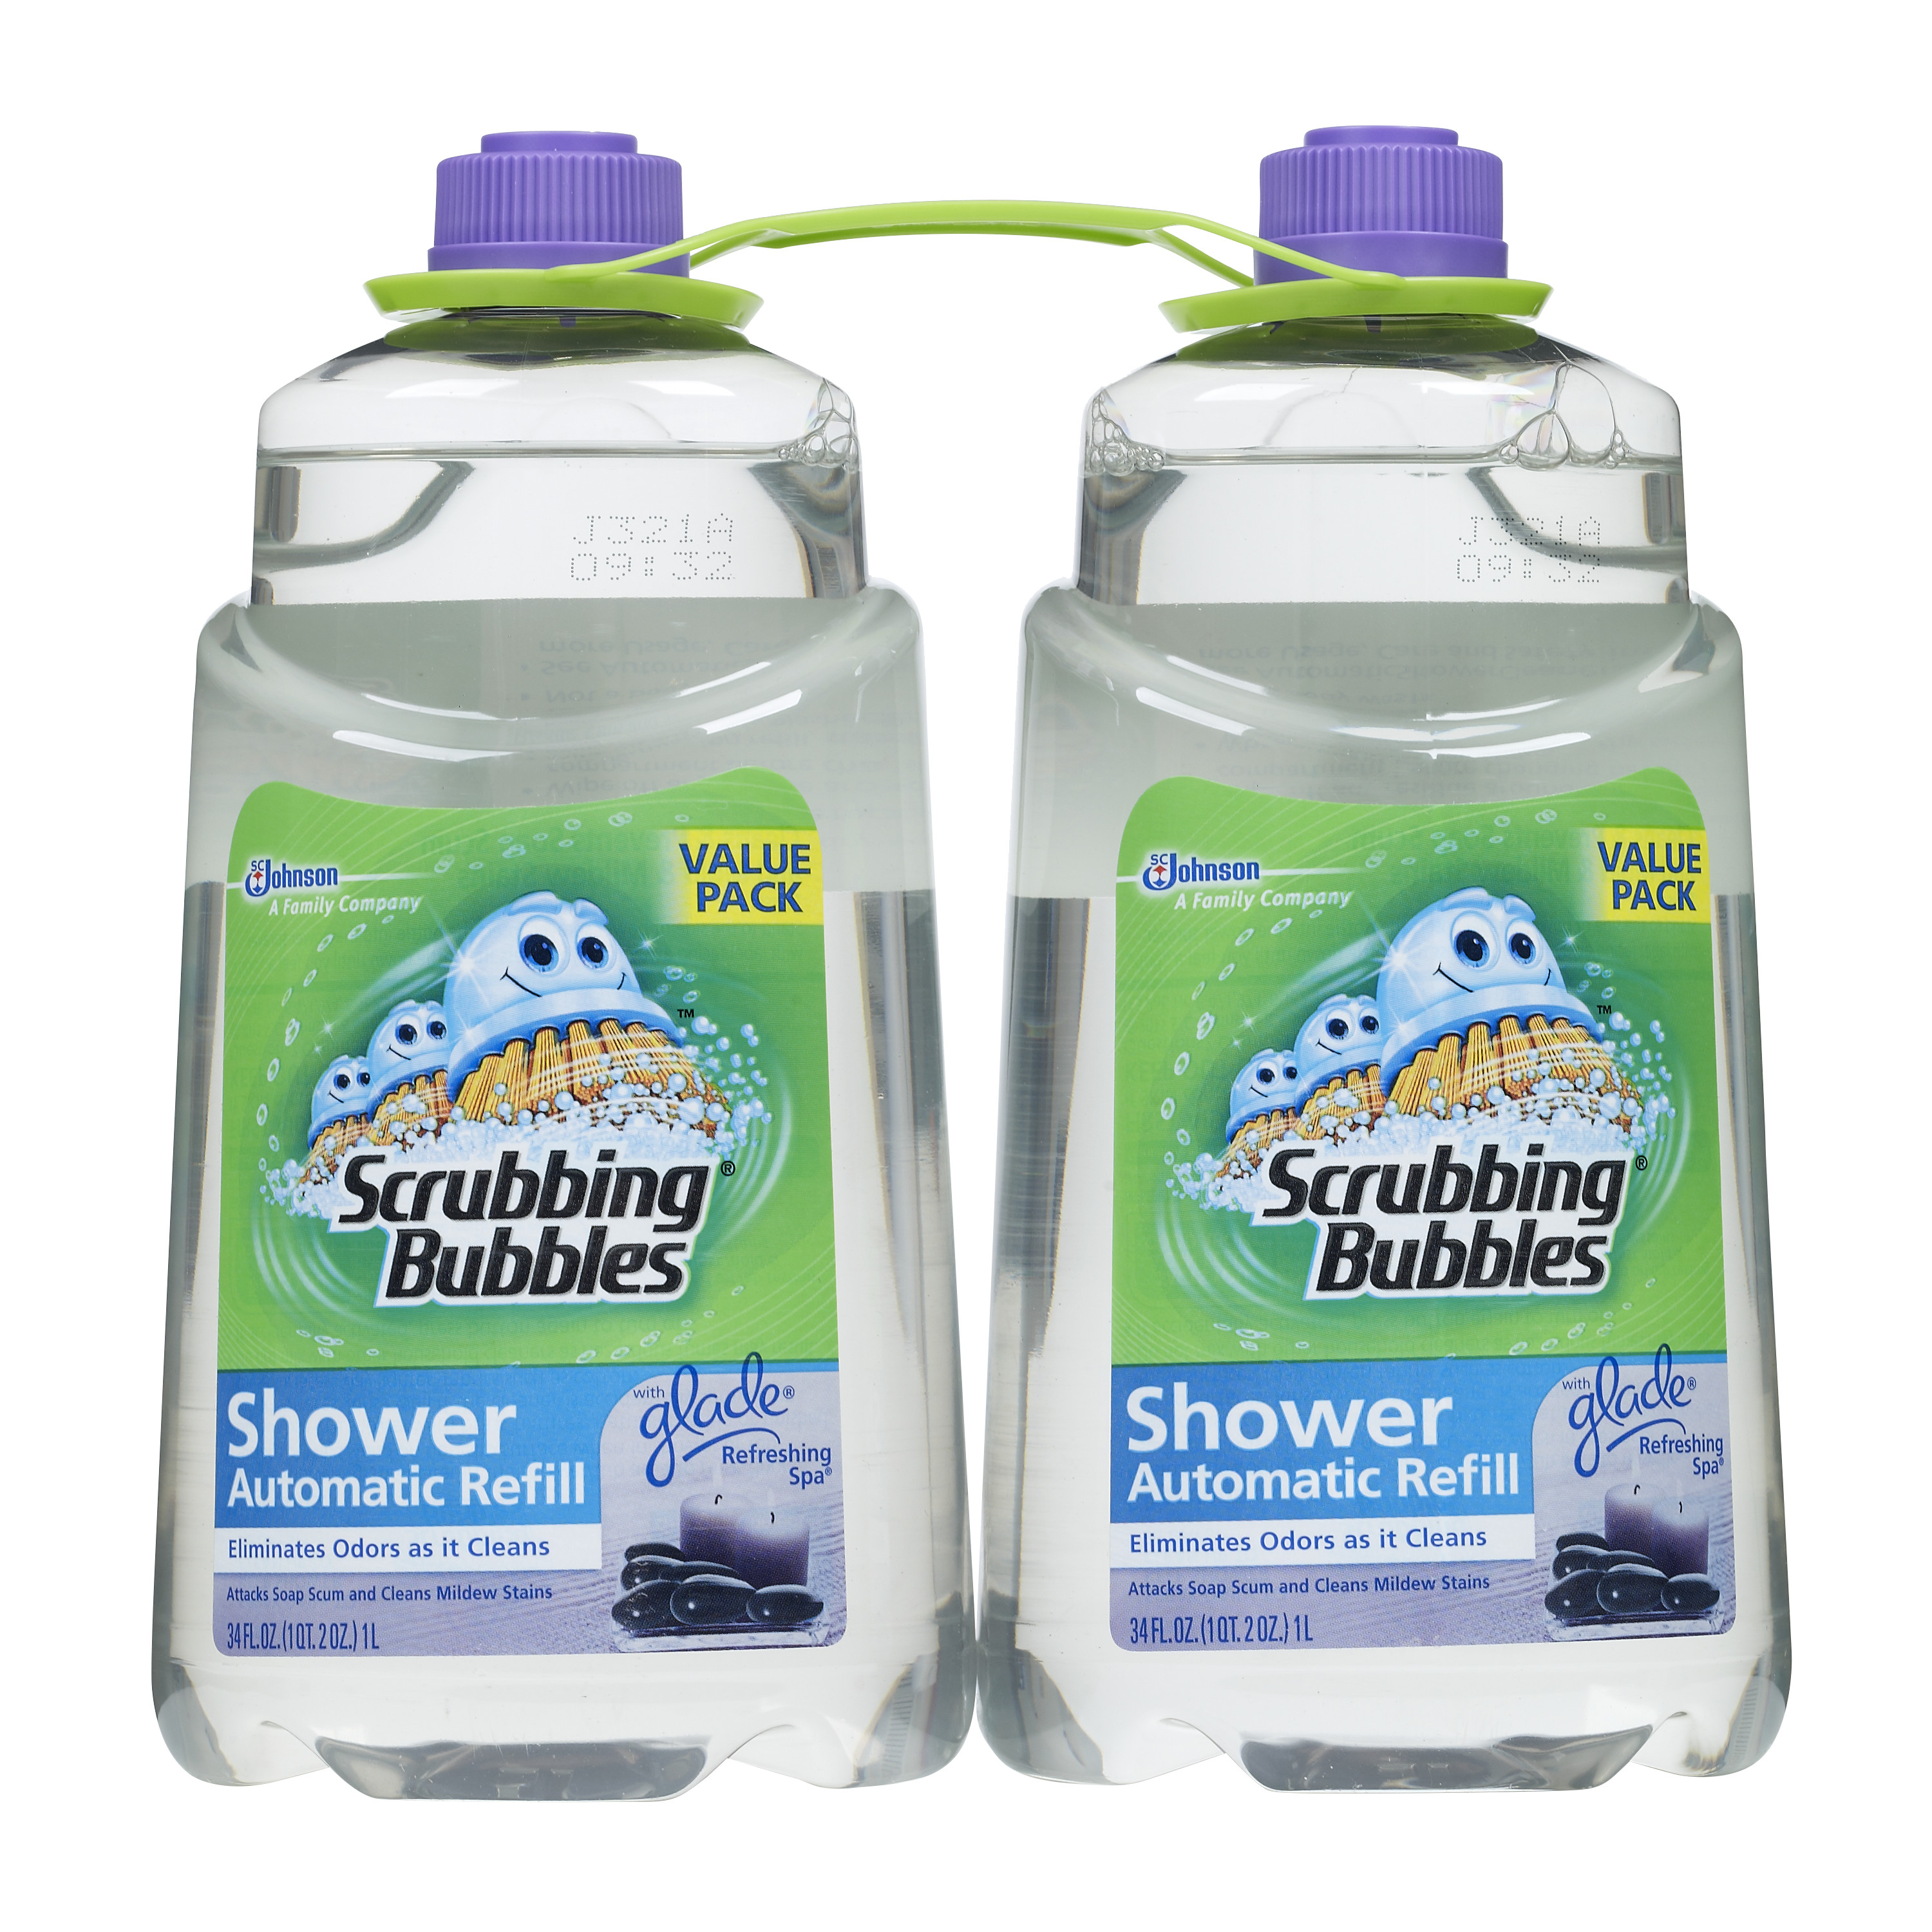 Scrubbing Bubbles Automatic Shower Cleaner Refill, Refreshing Spa, 64 Fluid Ounces, 2 count